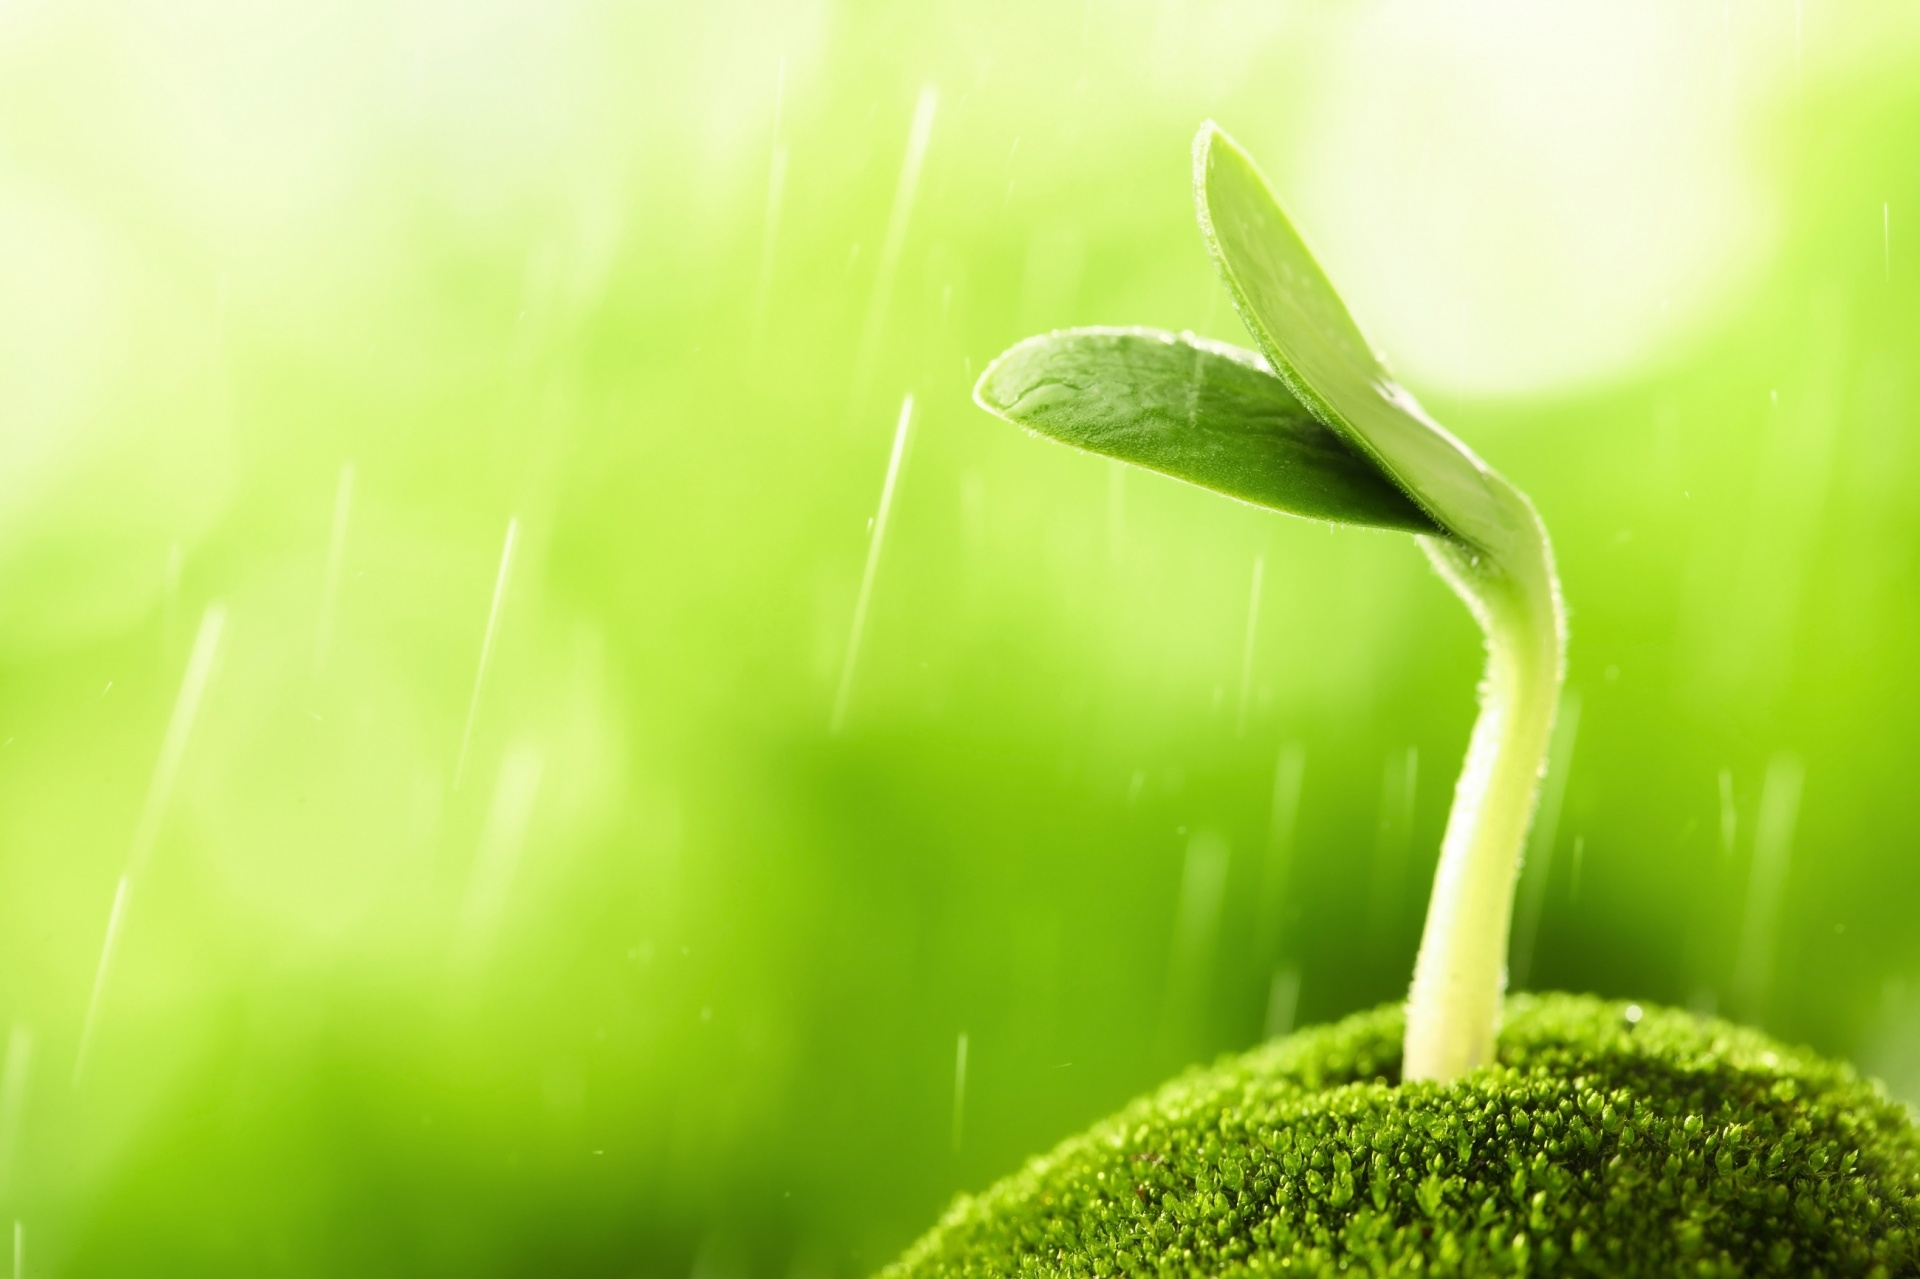 Bean sprout,plant,macro,close up,agriculture - free image from needpix.com